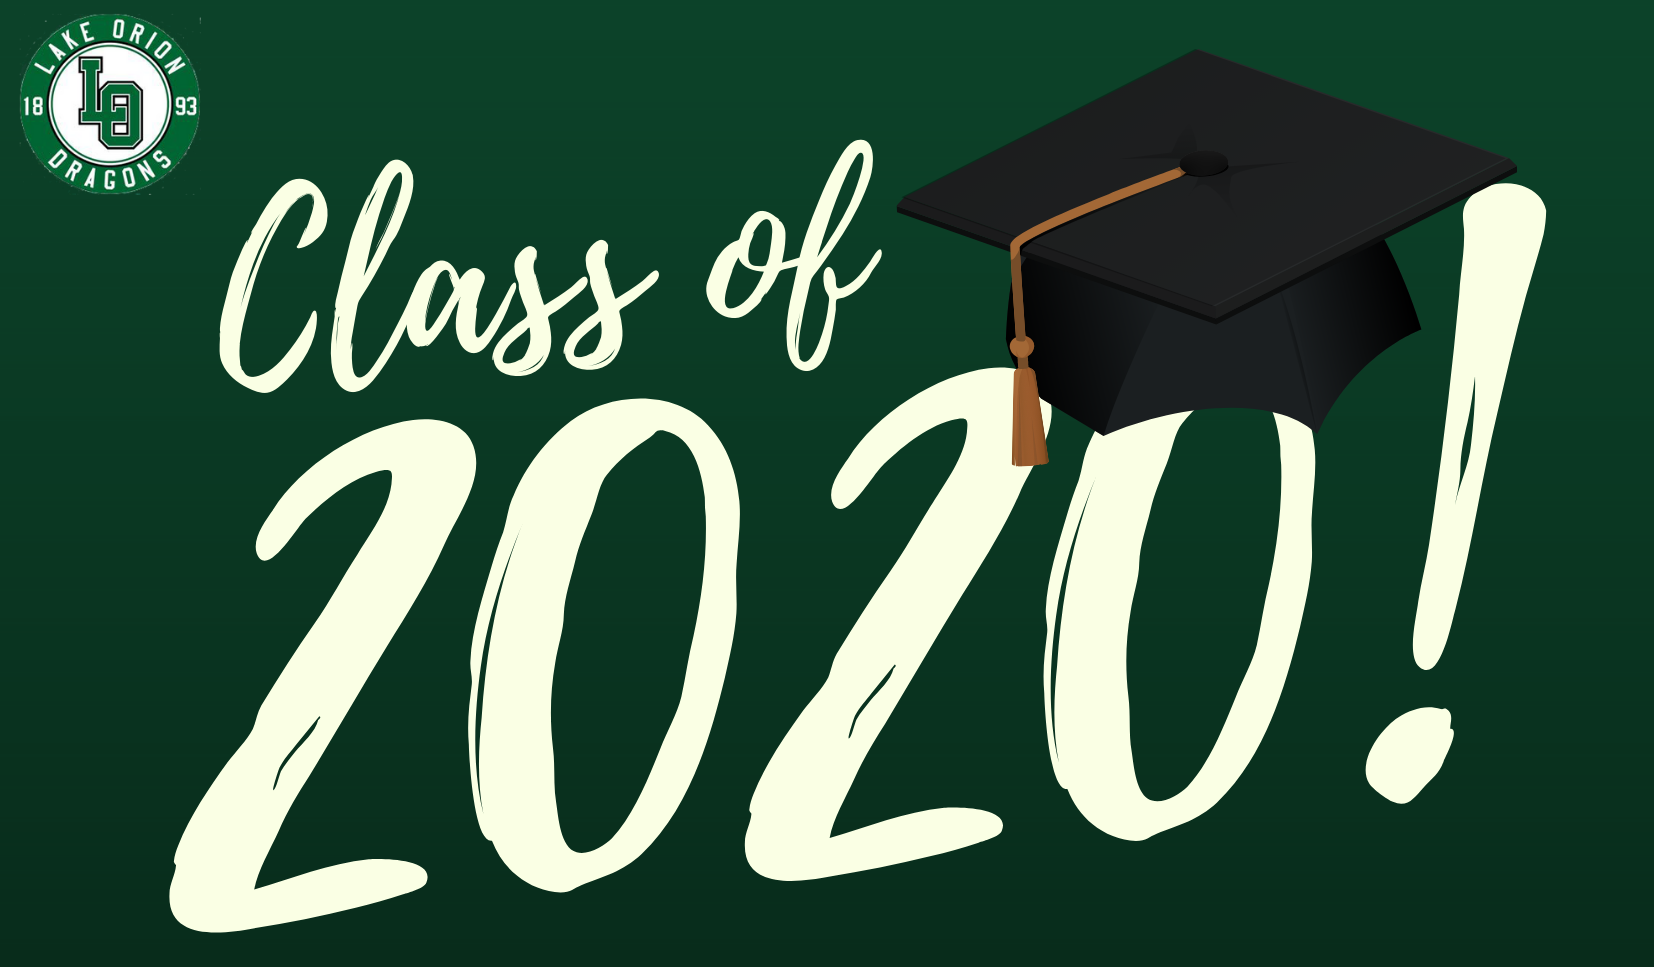 Senior End Of Year And Graduation - Lake Orion Community Schools For Lake Orion School Calendar 2021